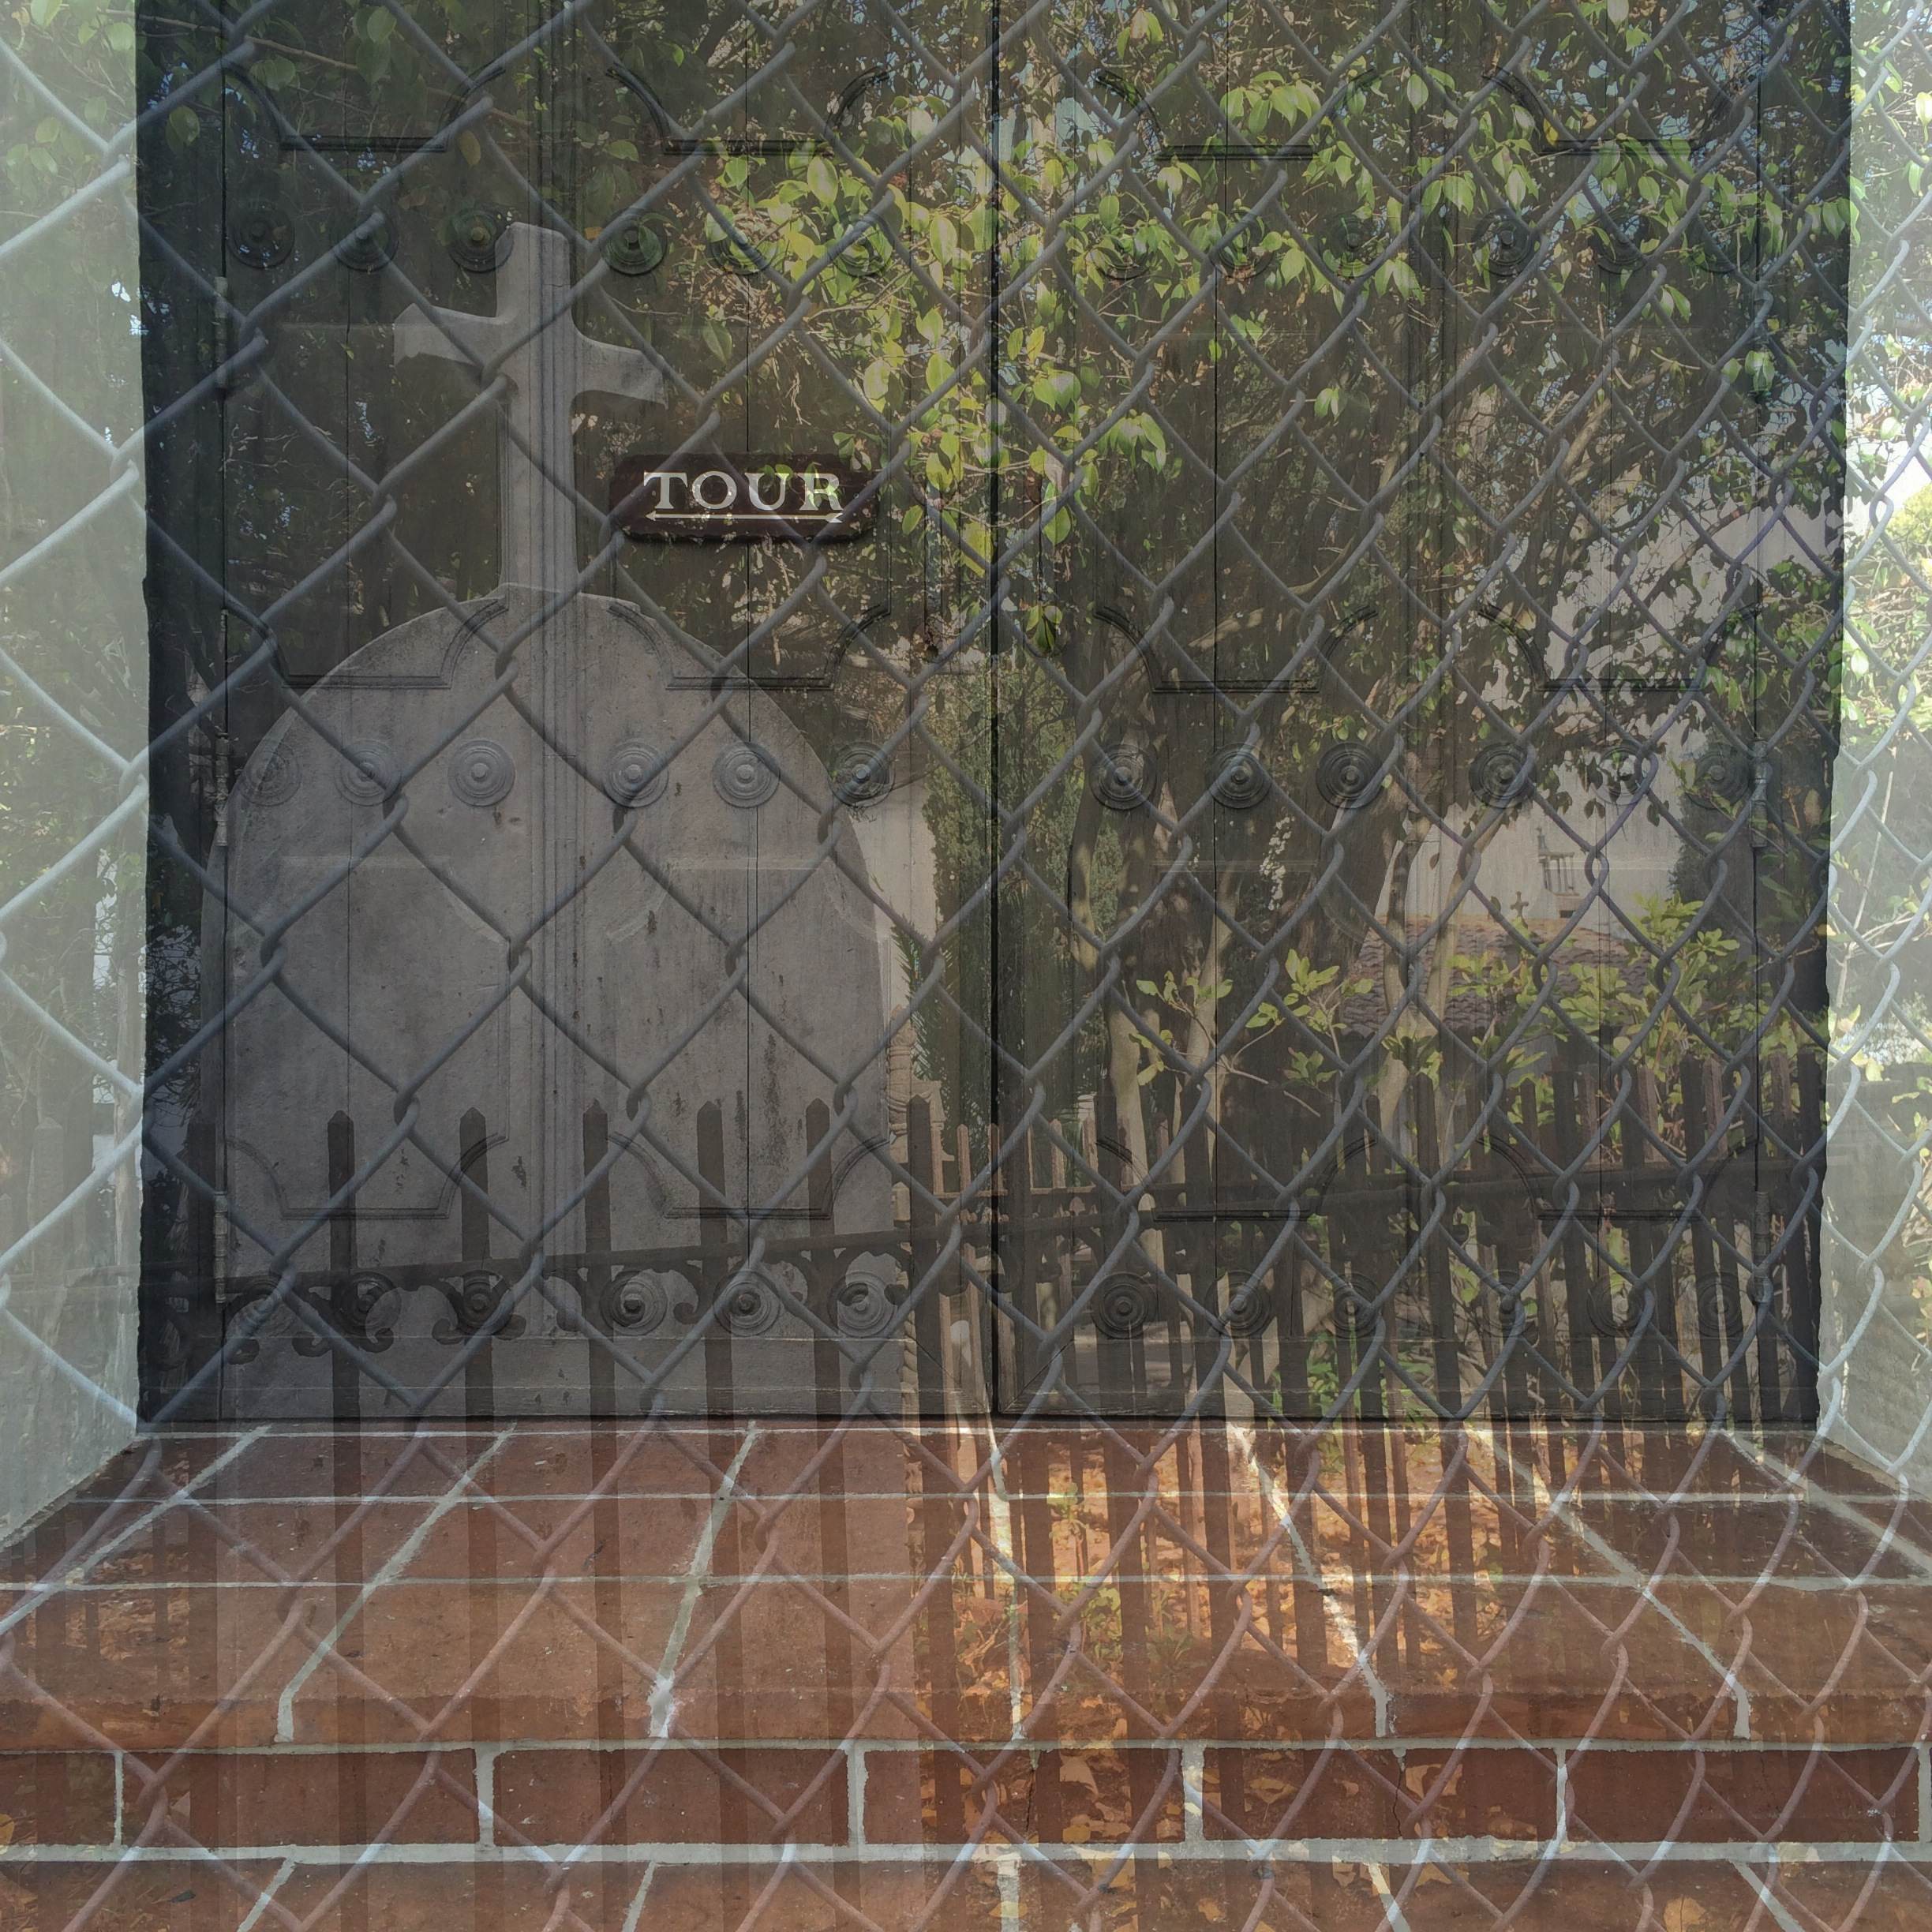 Alexa Eisner, layered images of Mission Dolores, SF